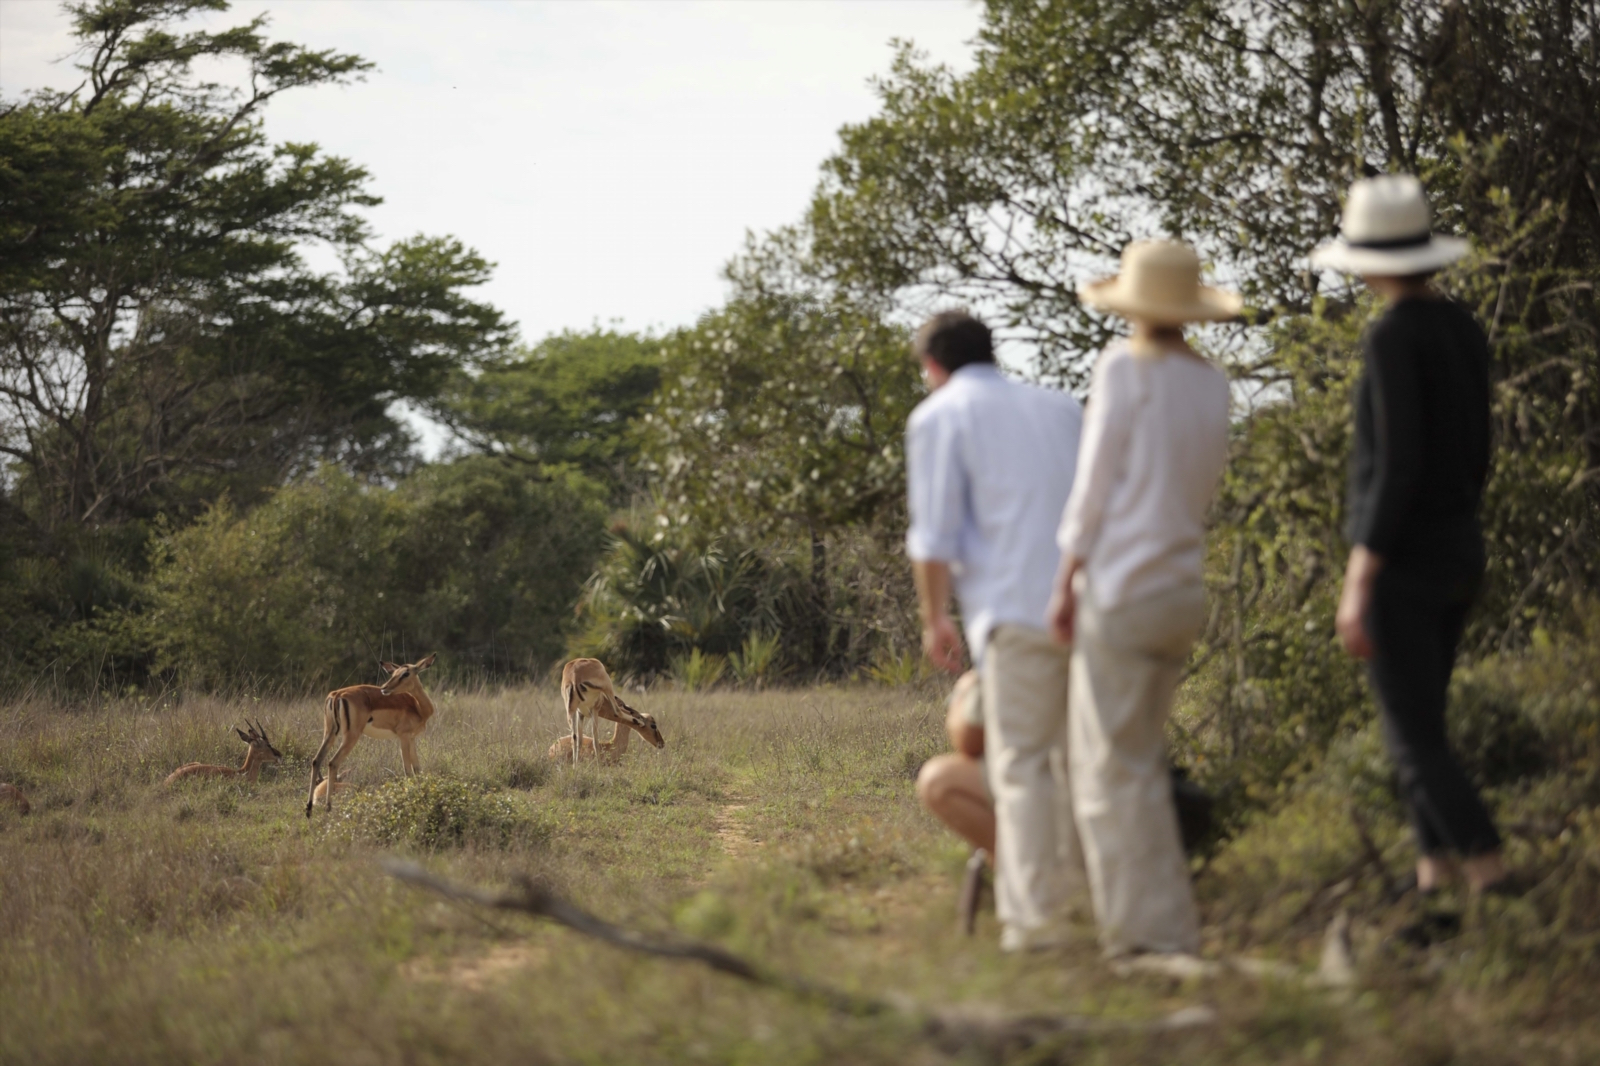 Game Walks (Bush walks) at Phinda Private Game Reserve, South Africa